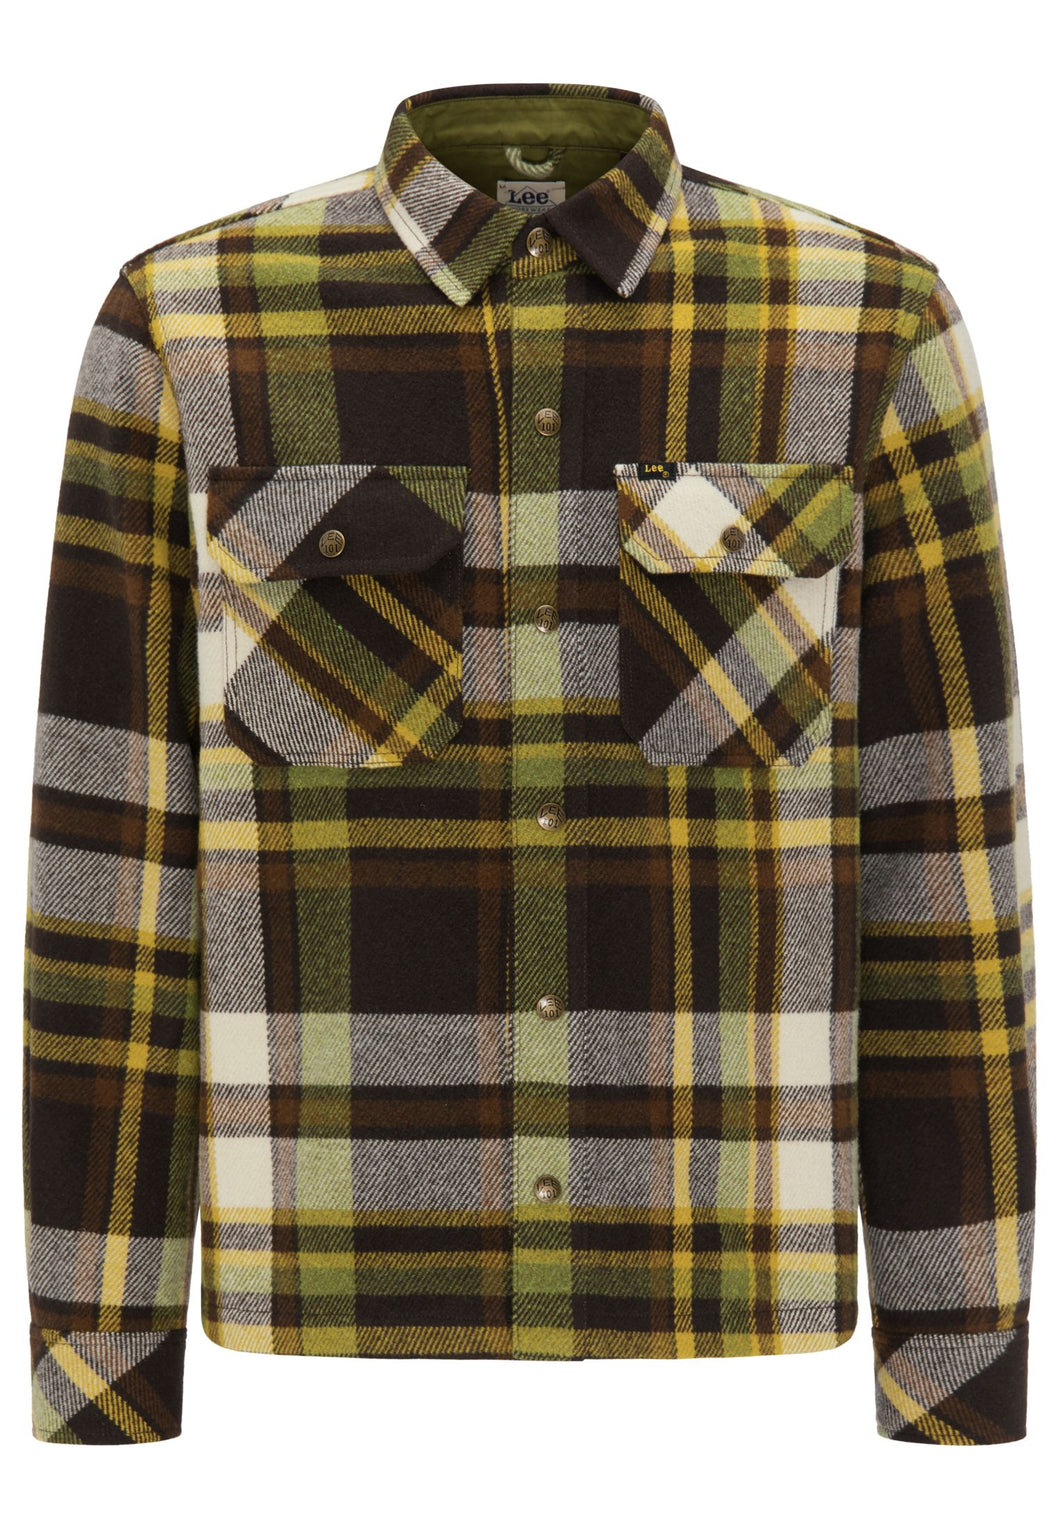 Lee 101 - Wool Overshirt - Green Delicioso Plaid